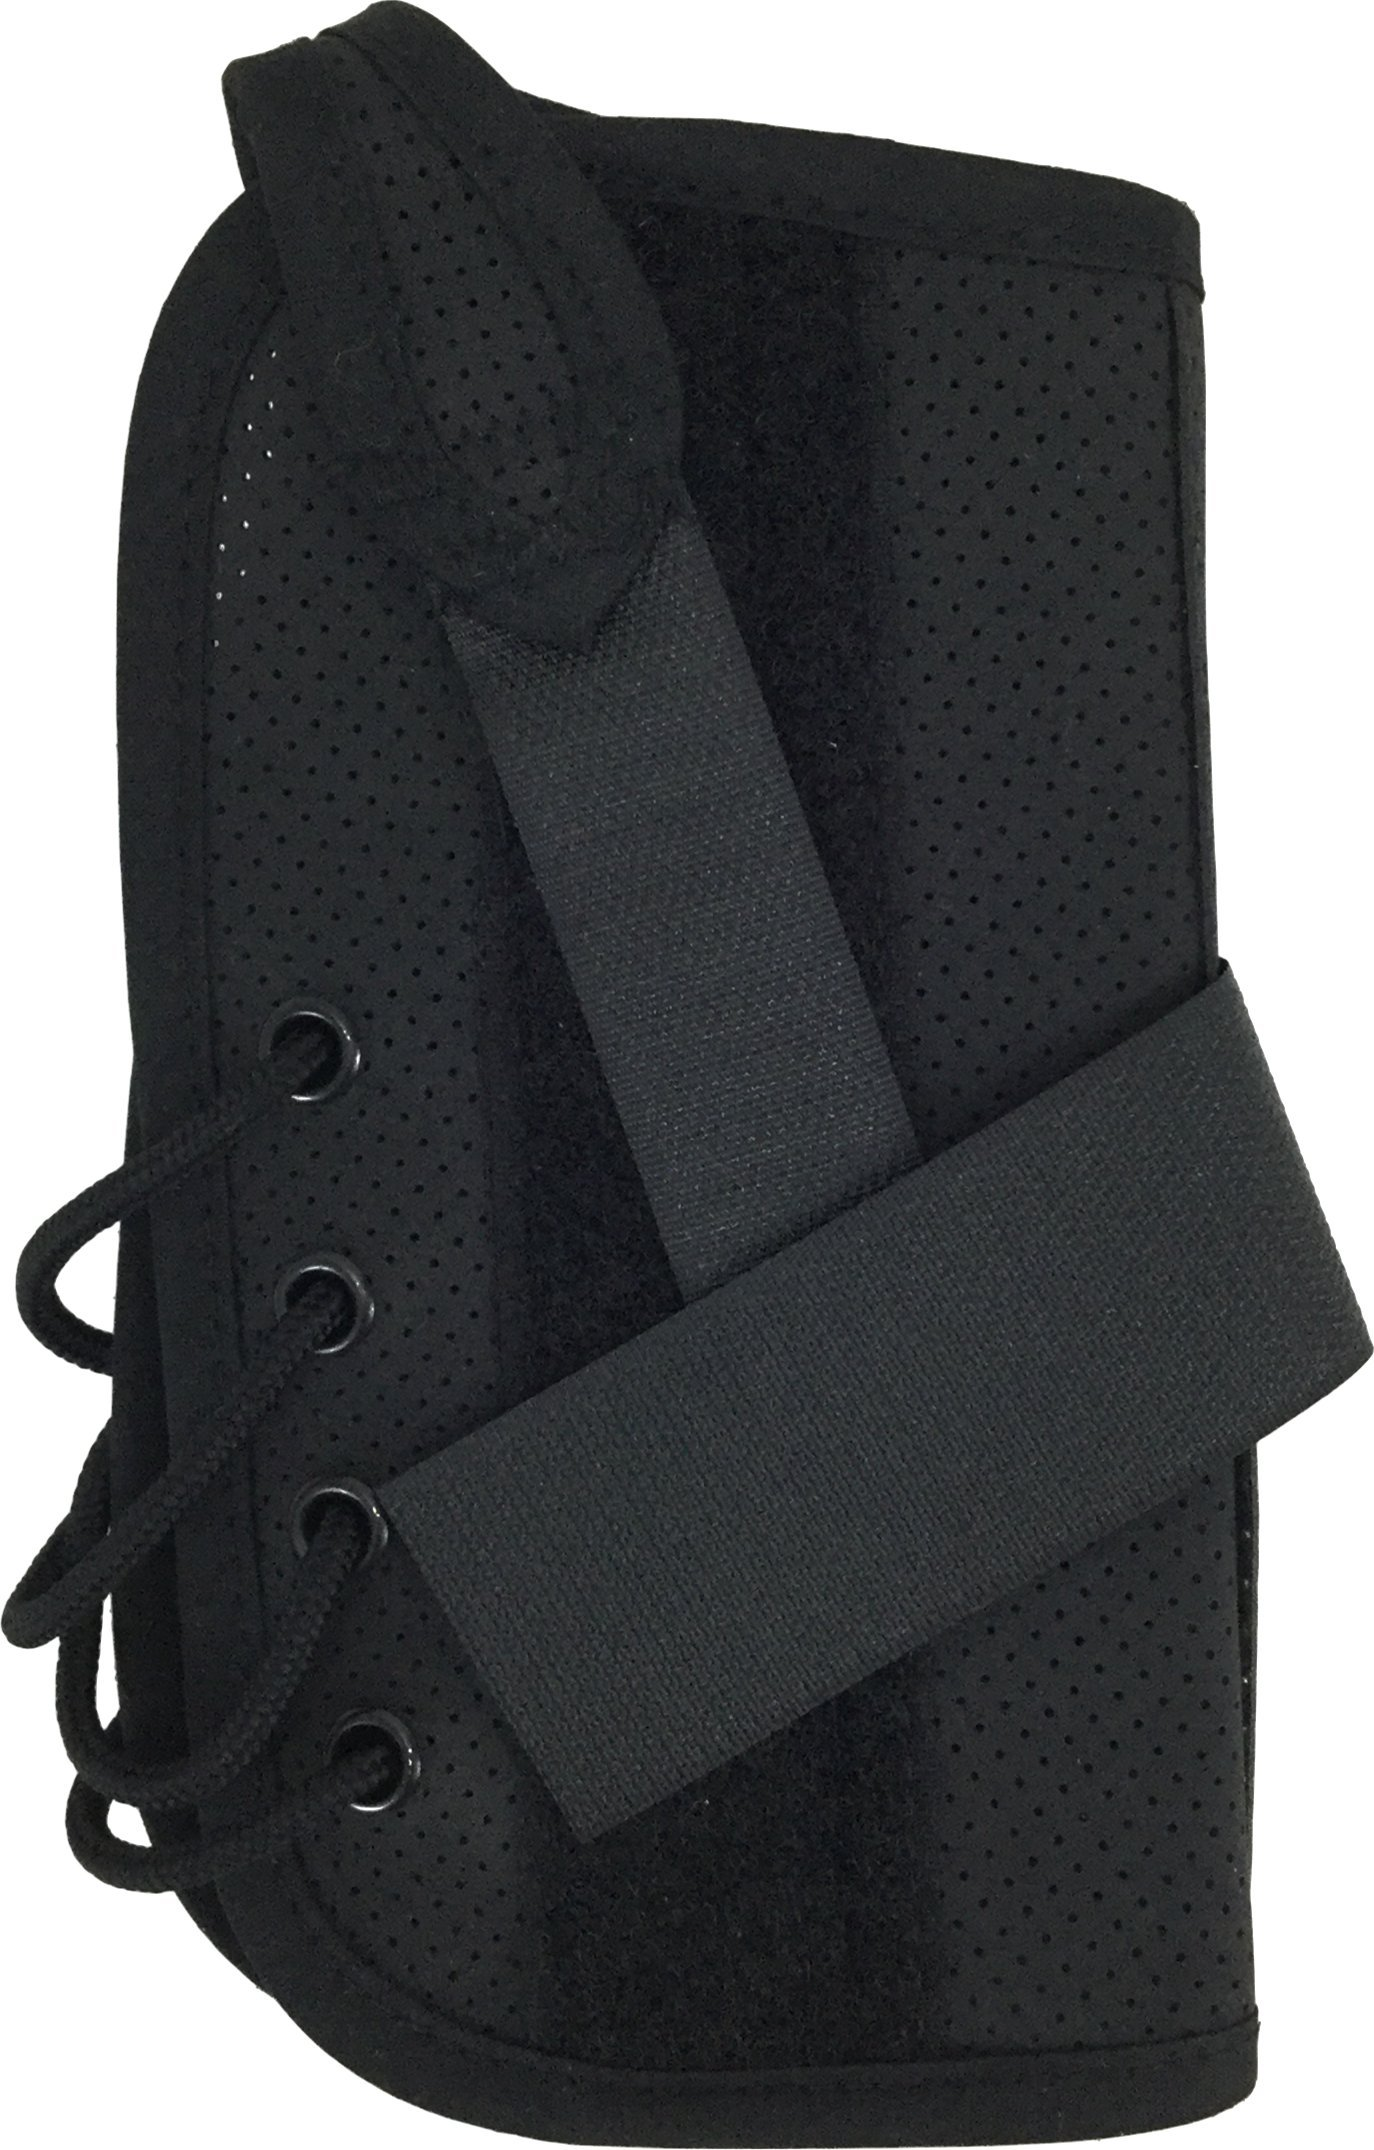 Corflex Post-Op Lace Up Wrist Brace for after Surgery-M-Right